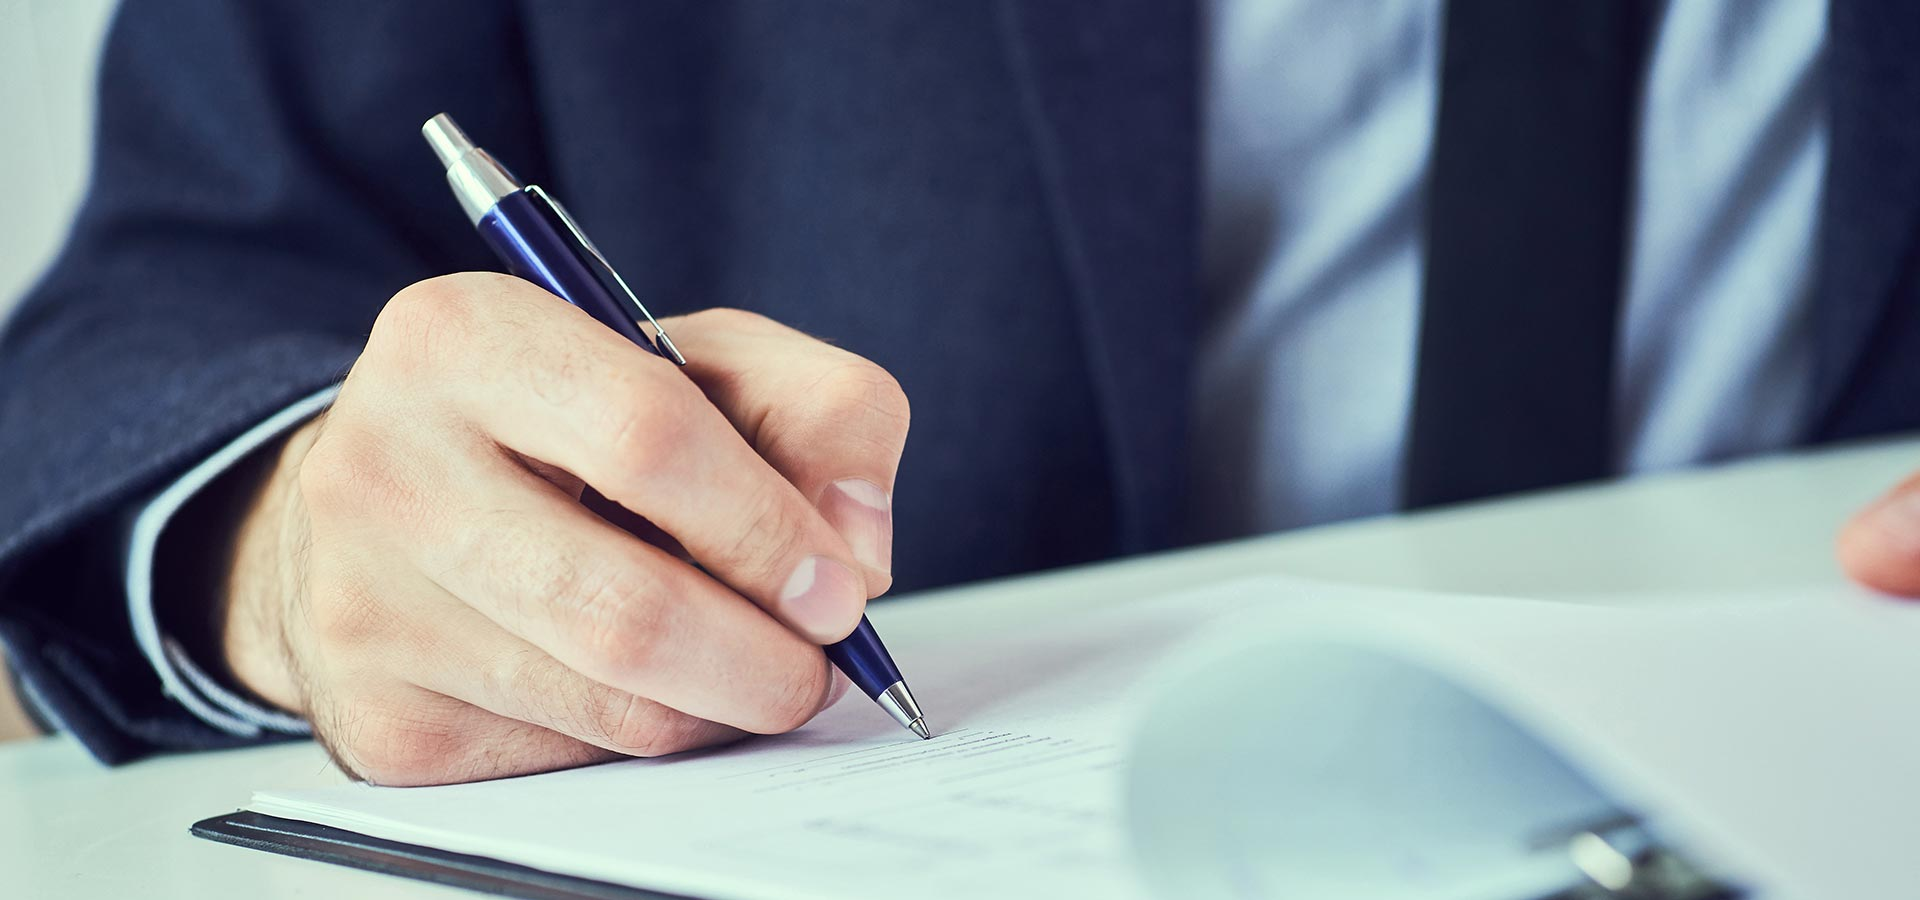 a hand signing a document with blue pen